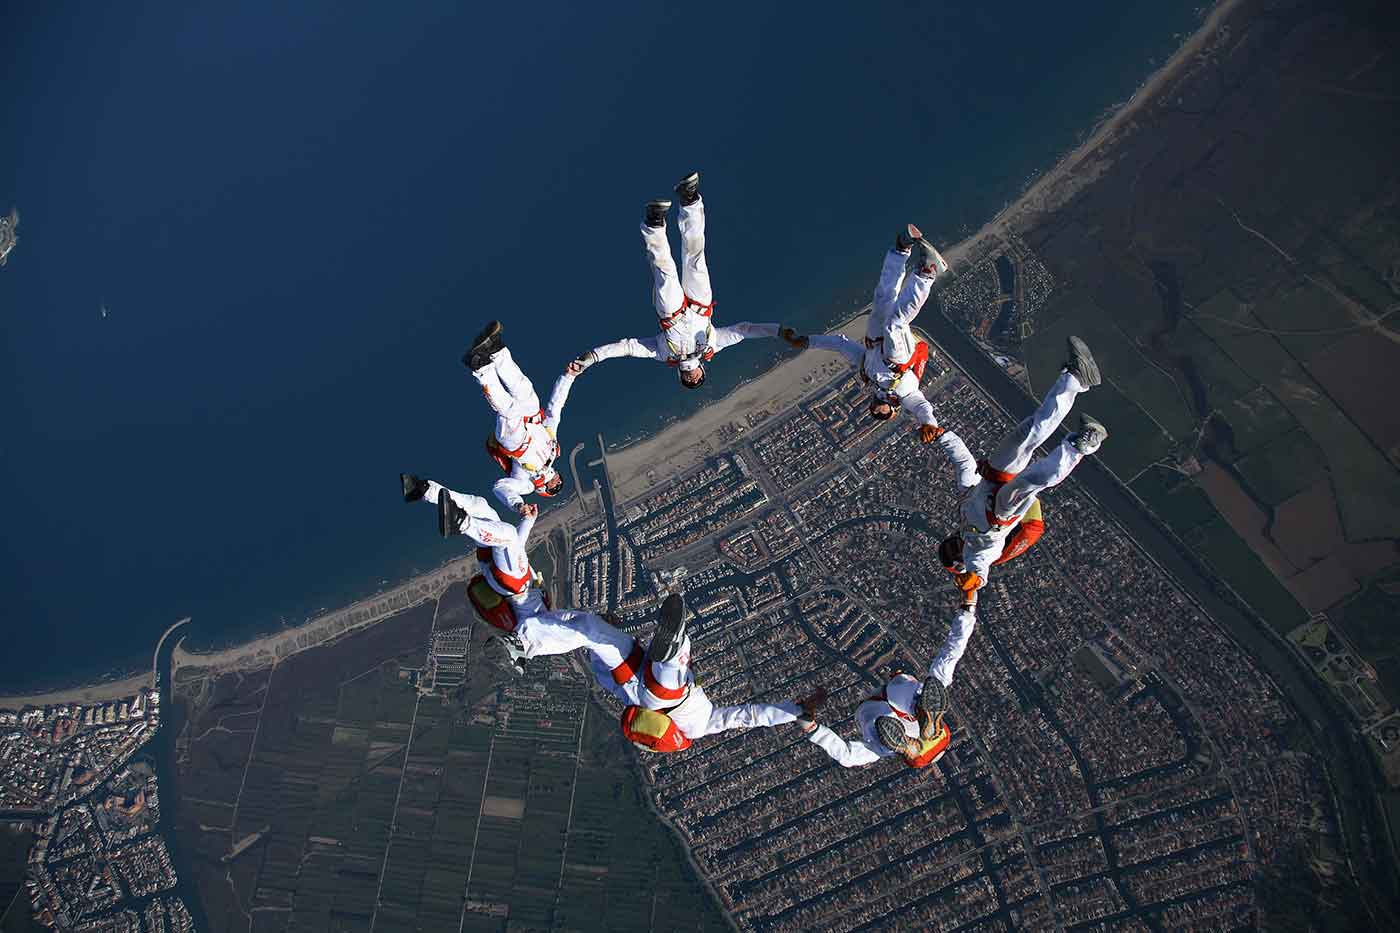 Photo of skydivers forming a circle in the air